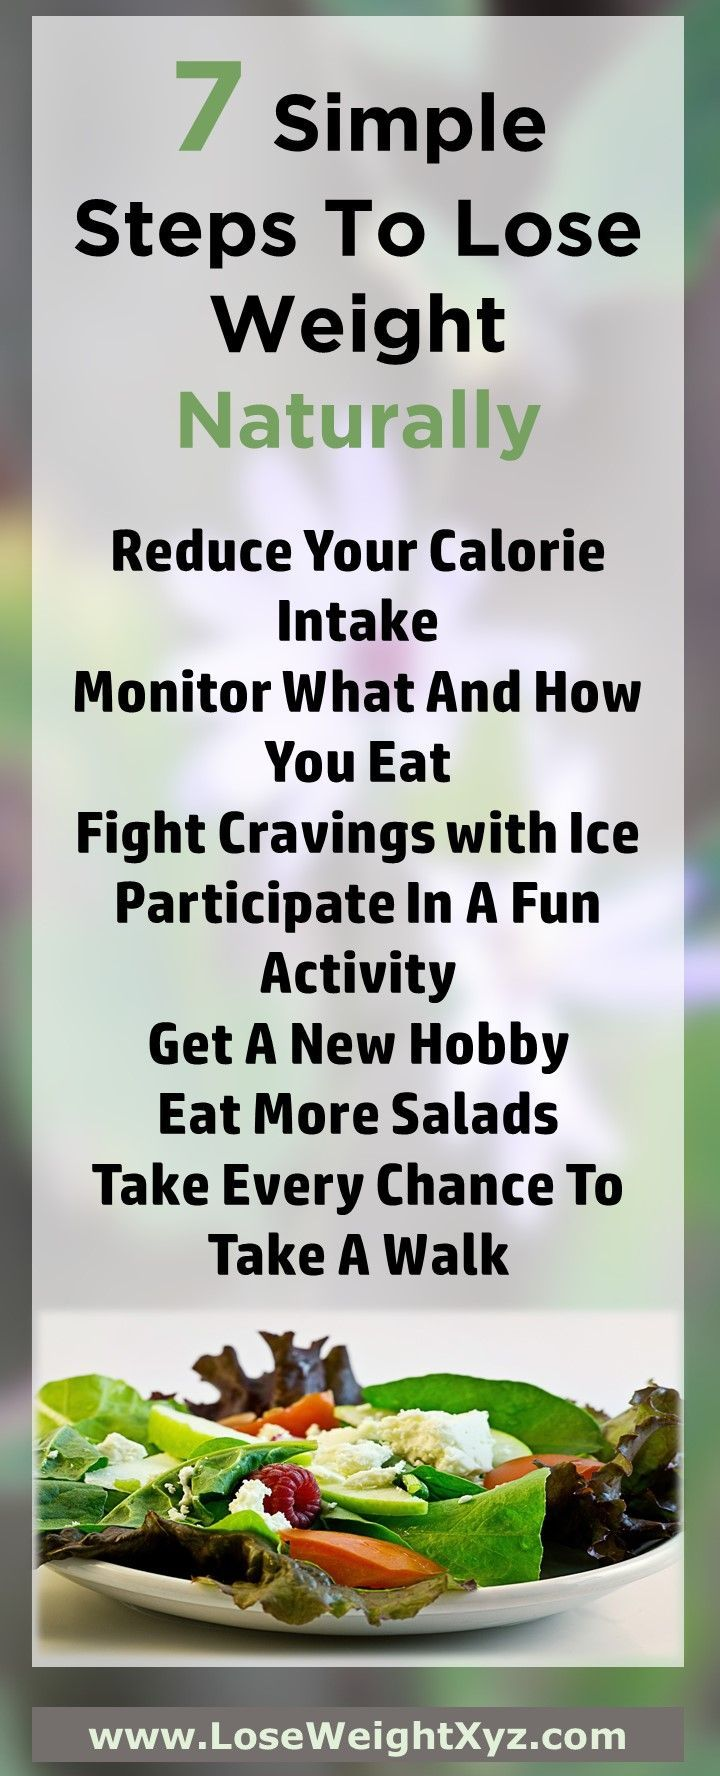 7 simple and easy tips to lose weight without exercise